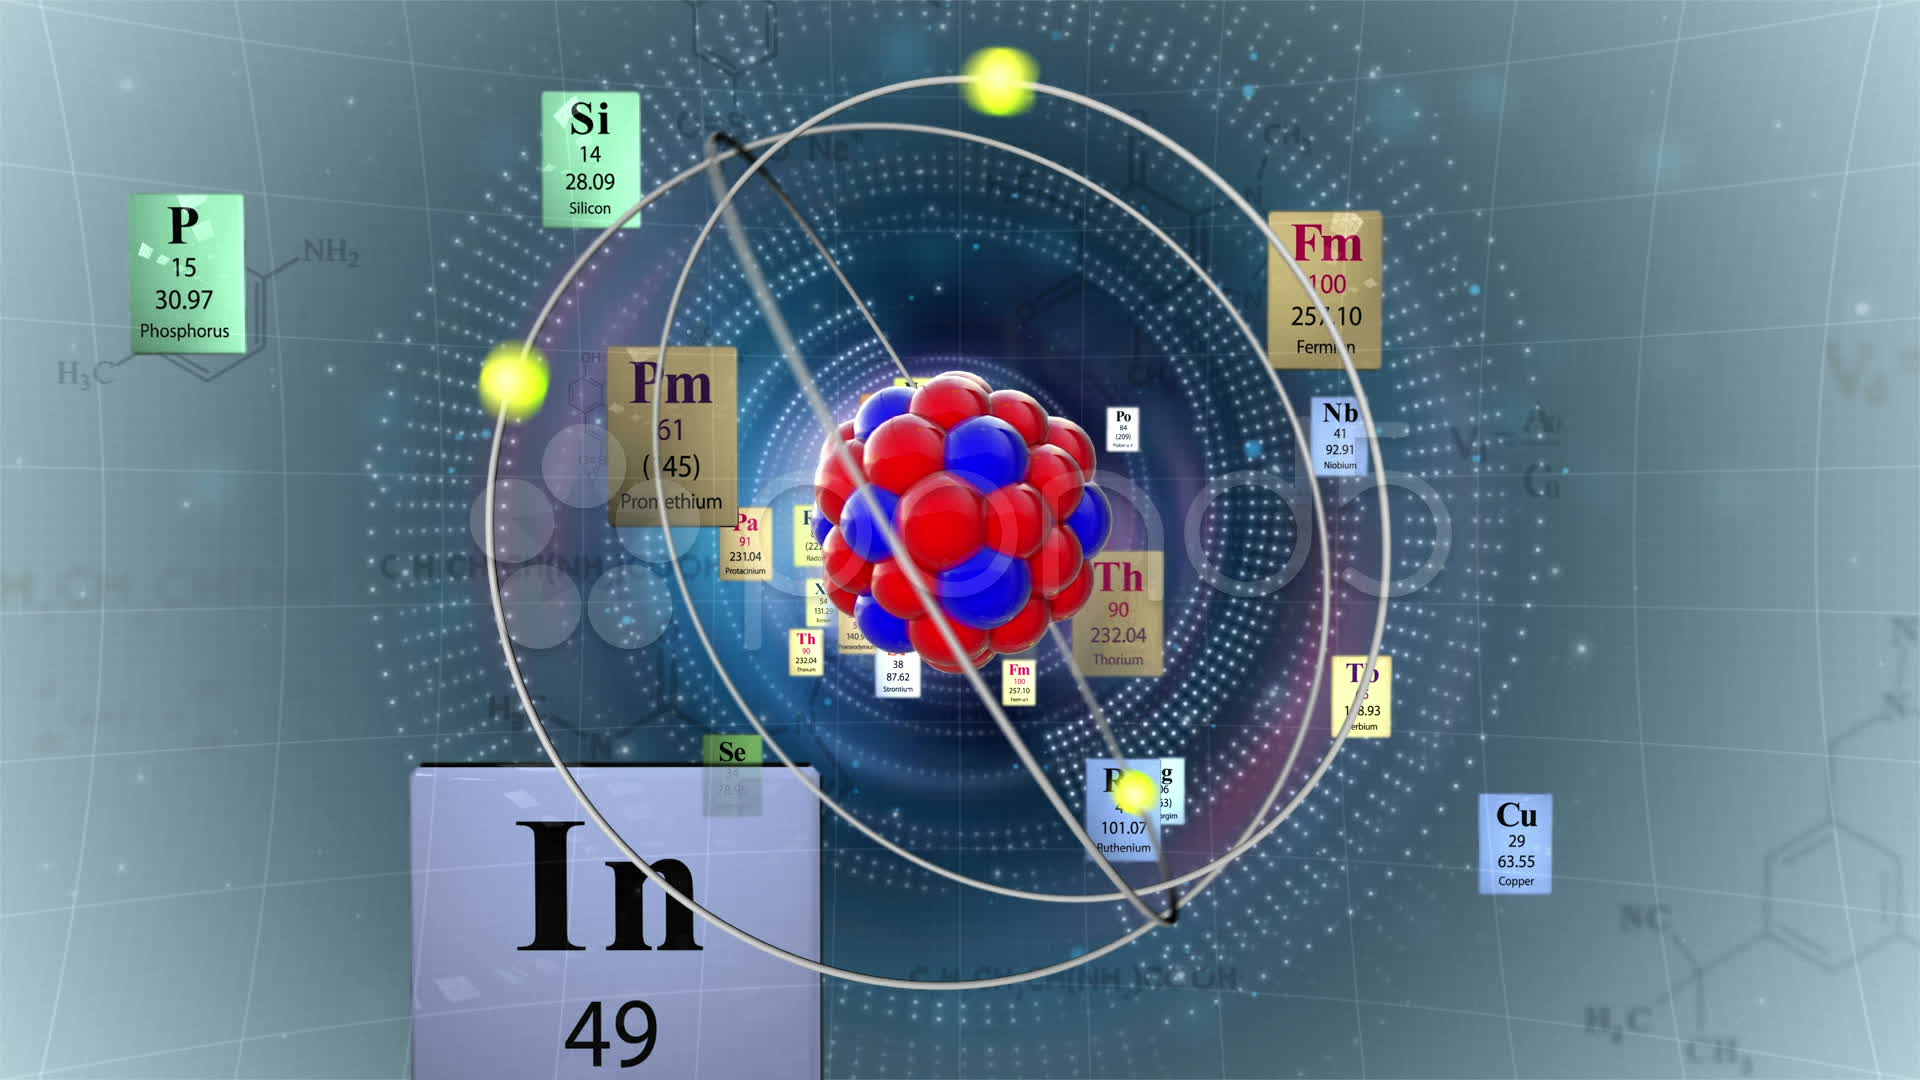 Scientific Background Atom Model With Elements Of